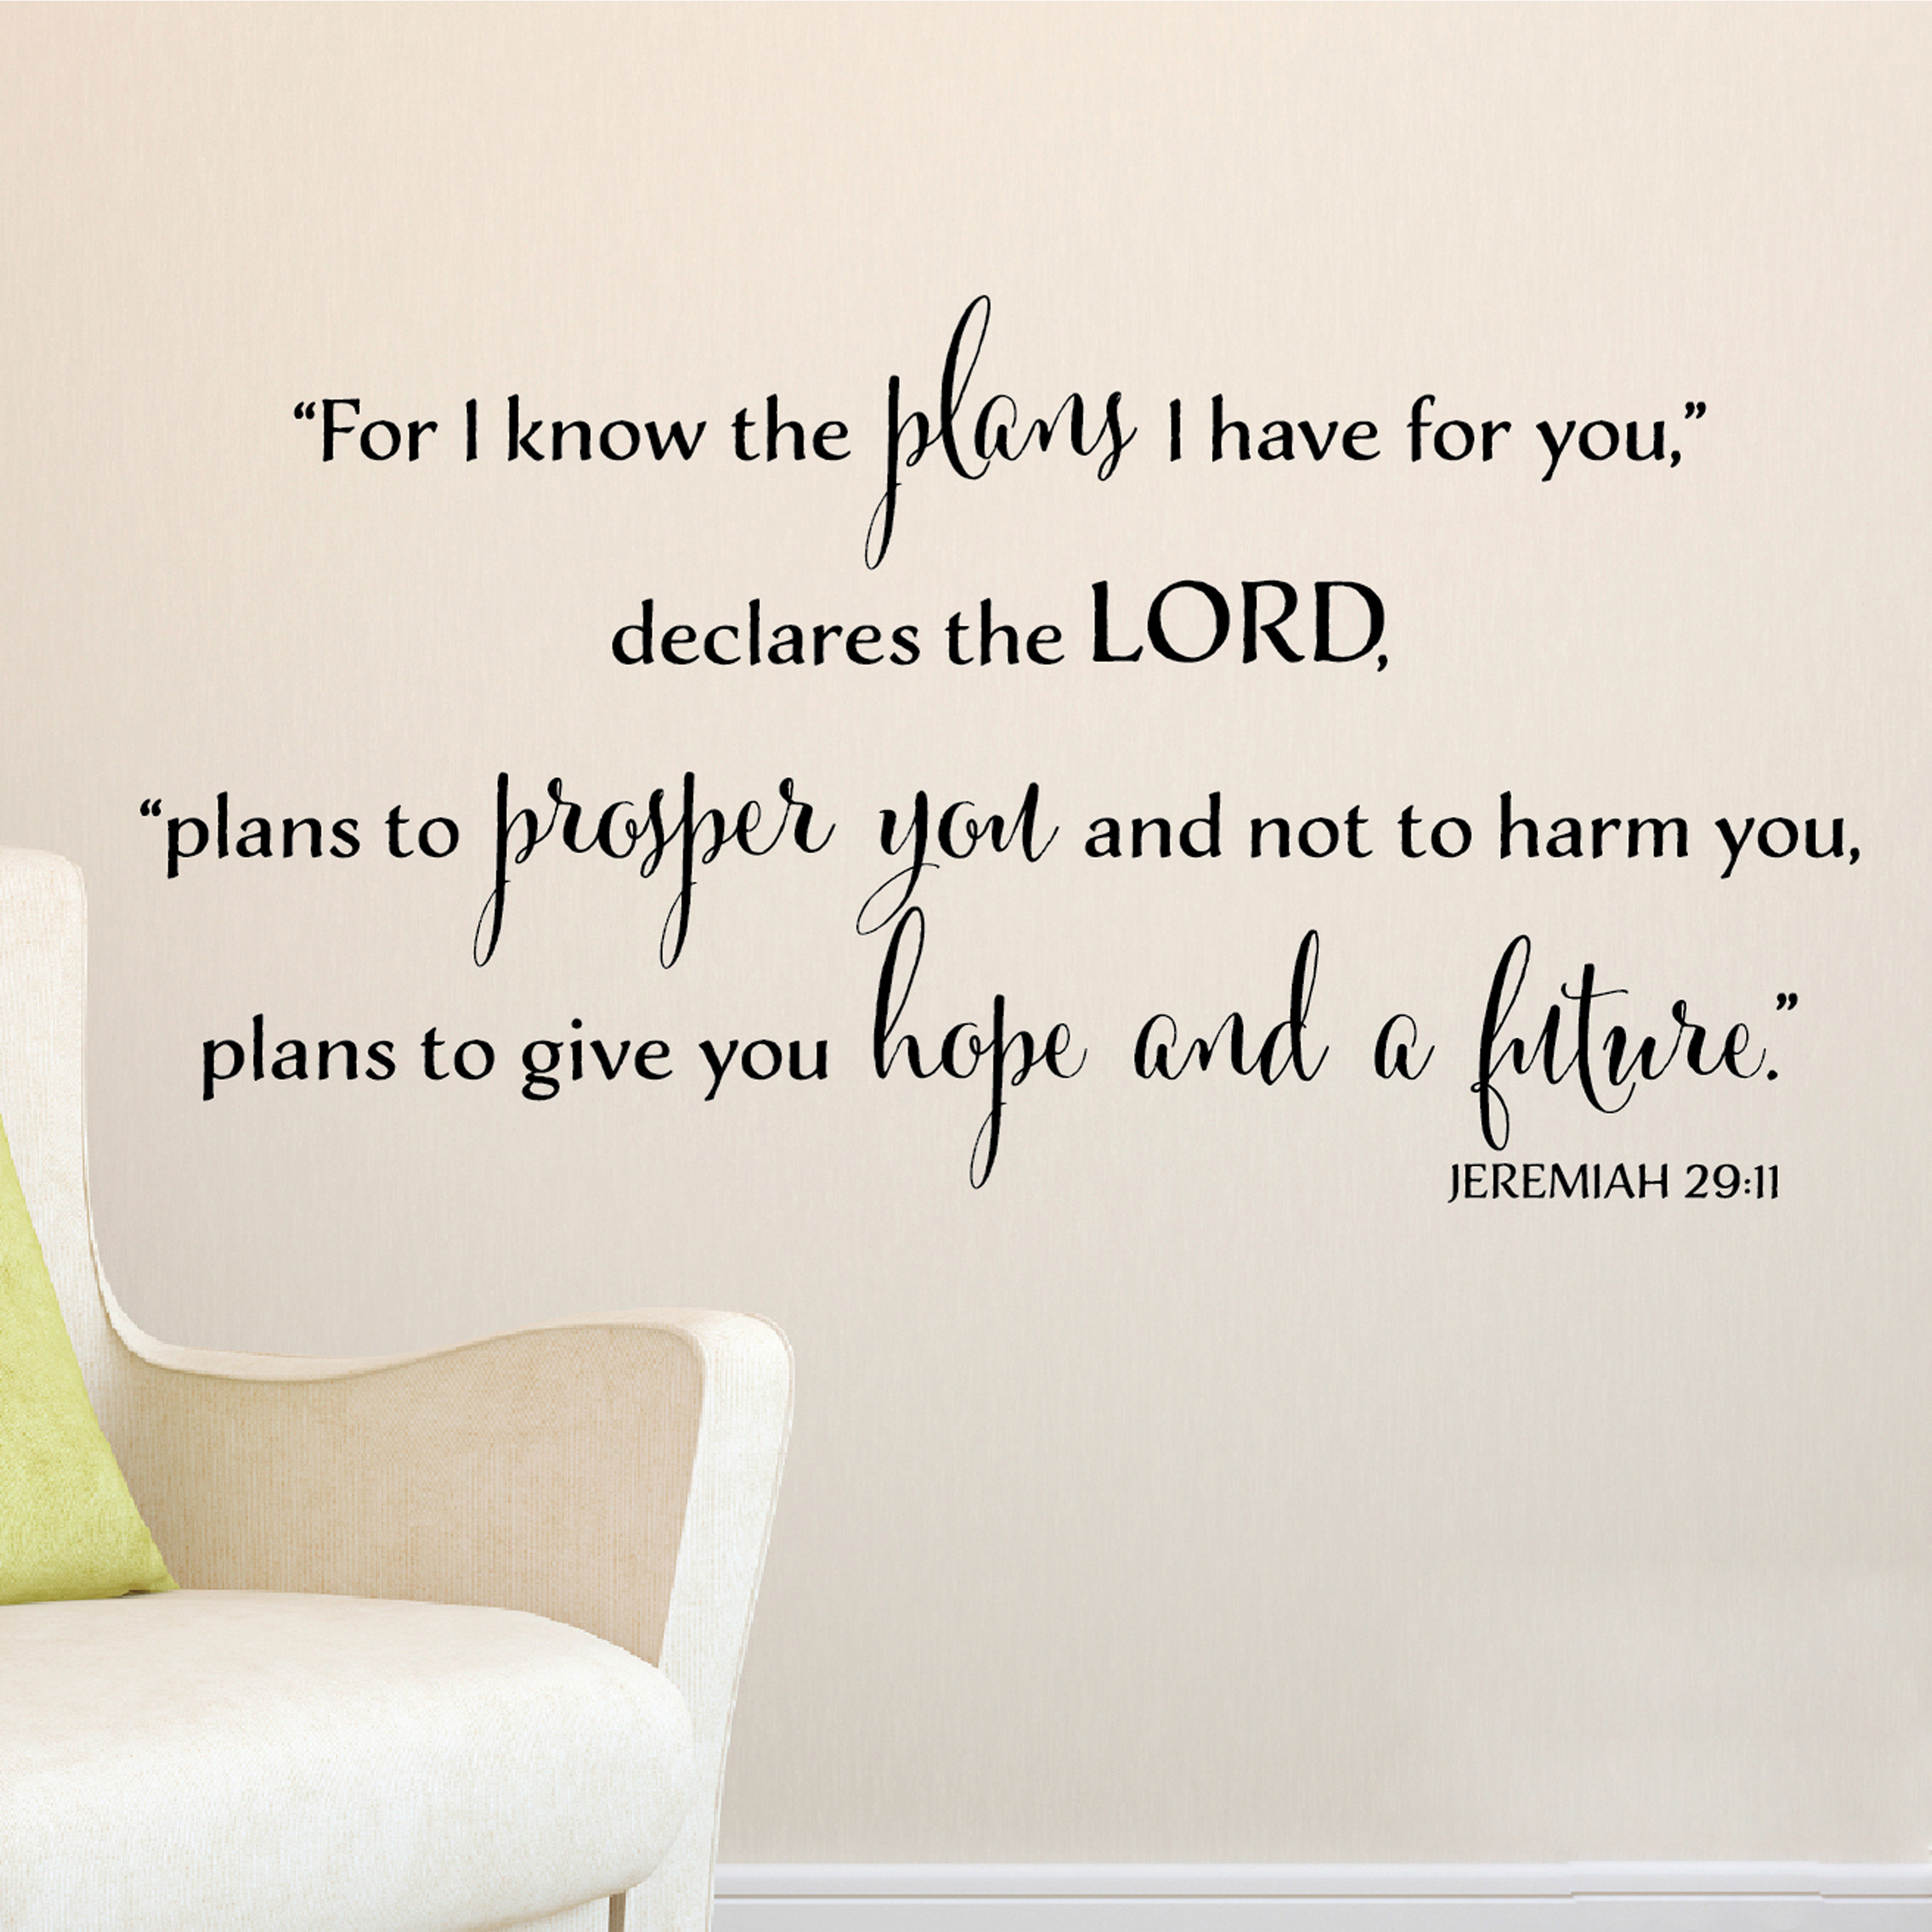 Jeremiah 29v11 Vinyl Wall Decal 12 For I Know The Plans I